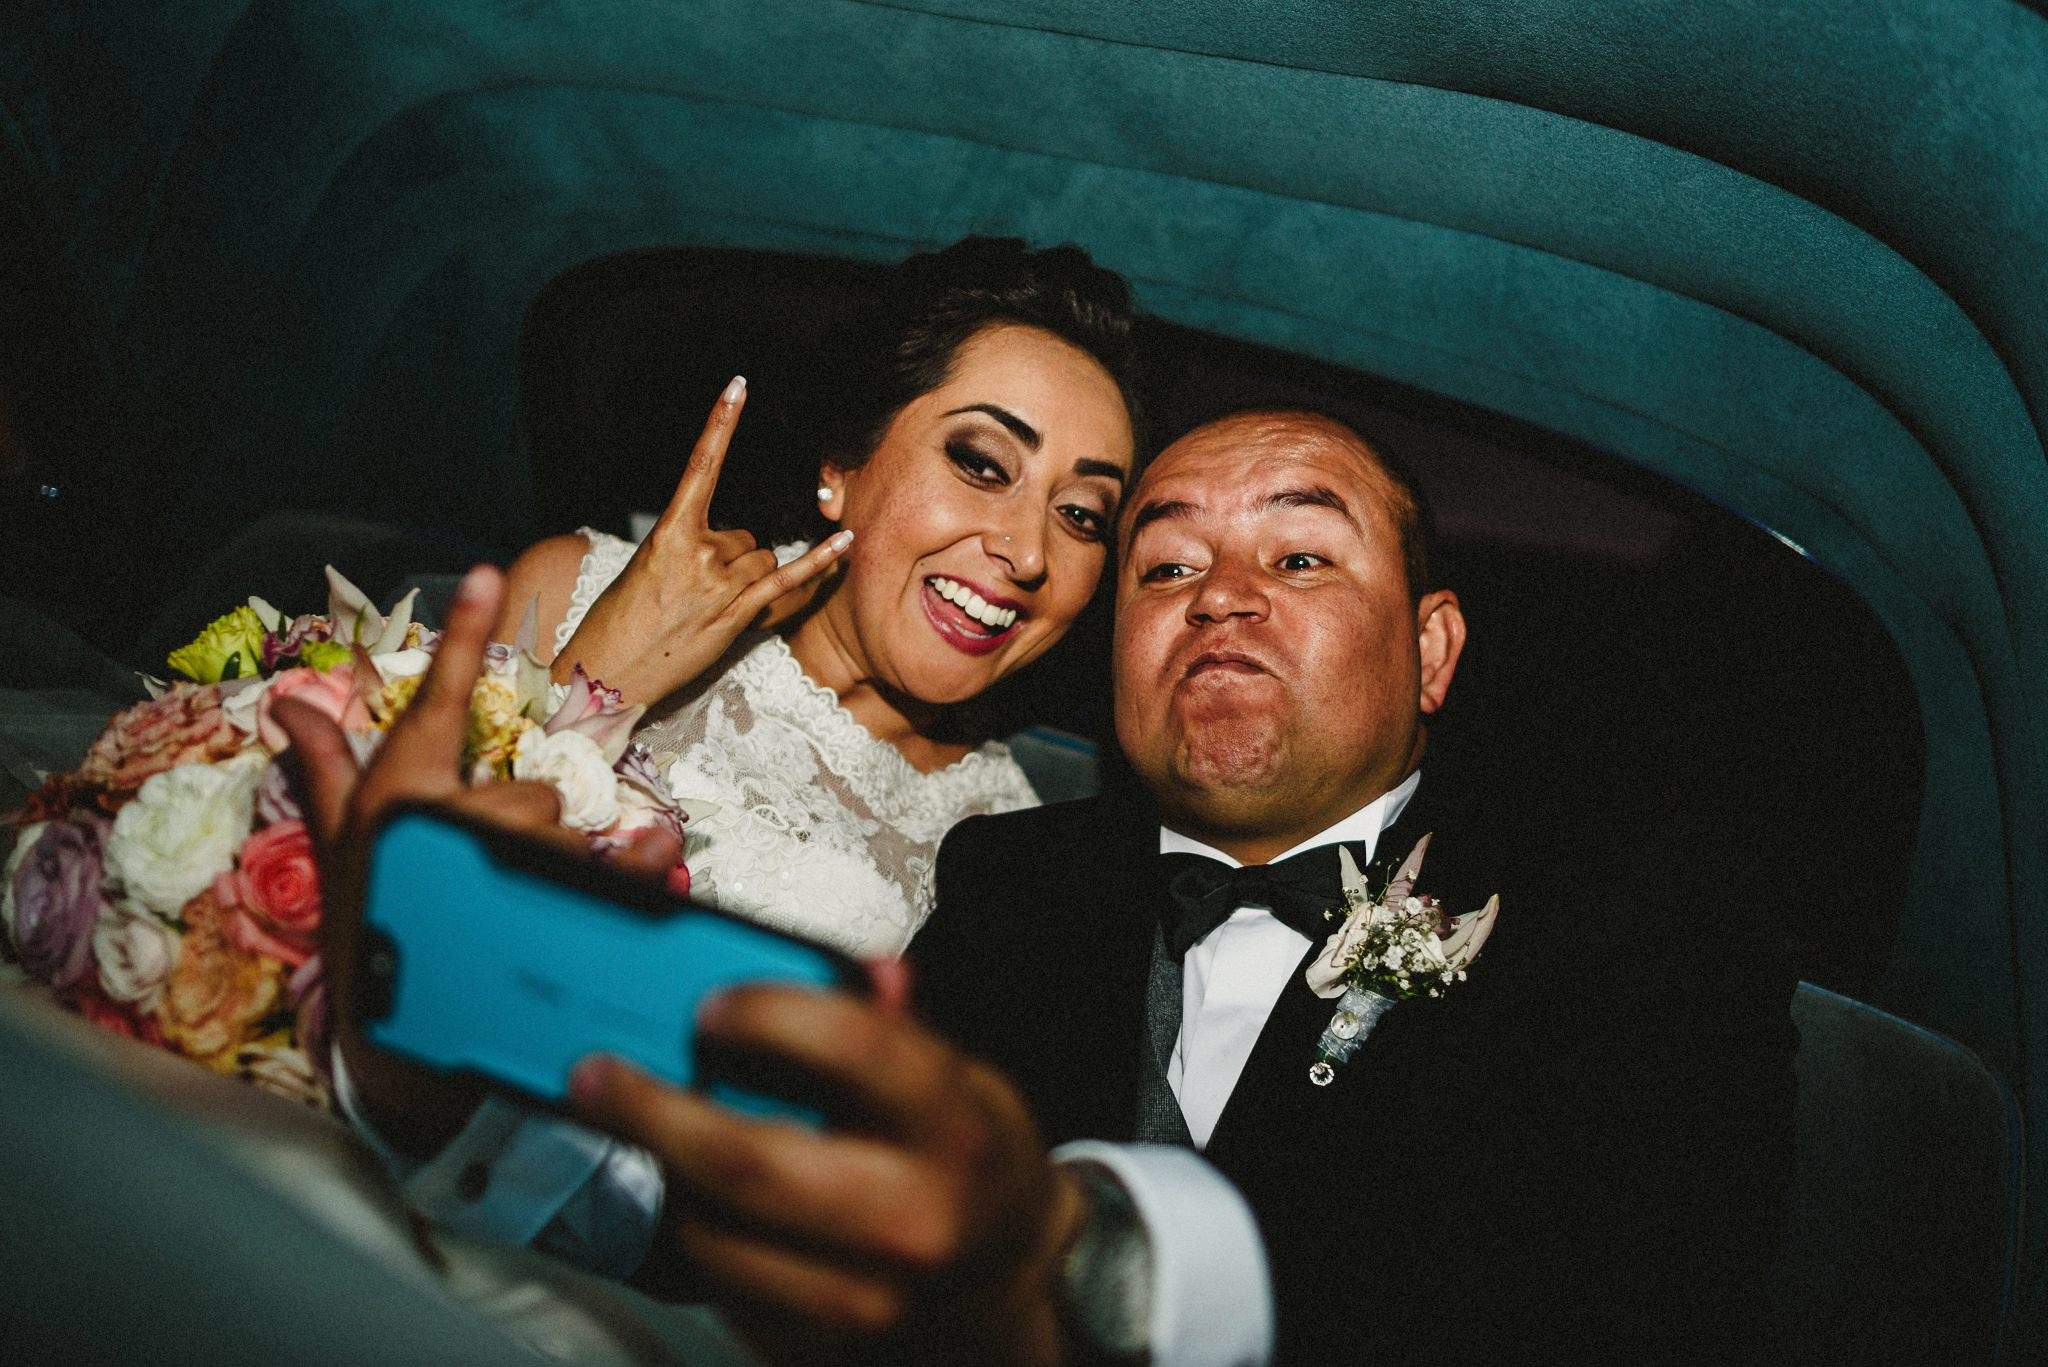 Wedding-Boda-Tulancingo-Hidalgo-Salon-Essenzia-Luis-Houdin-37-film